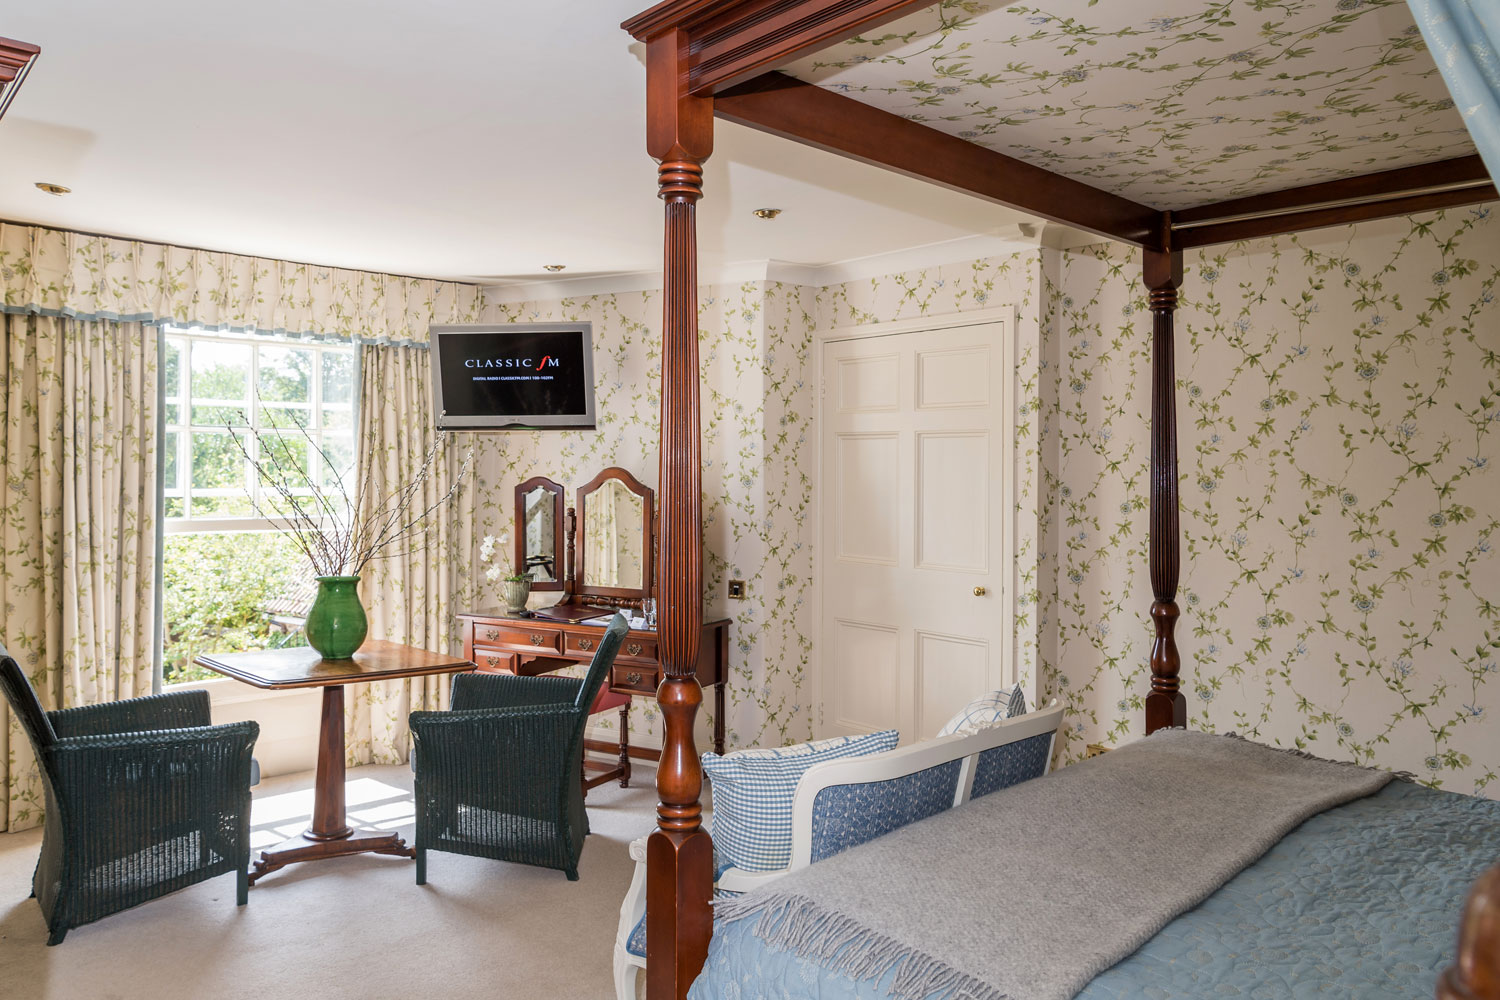 Luxurious Magazine Goes West To Review The Eastbury Hotel 4